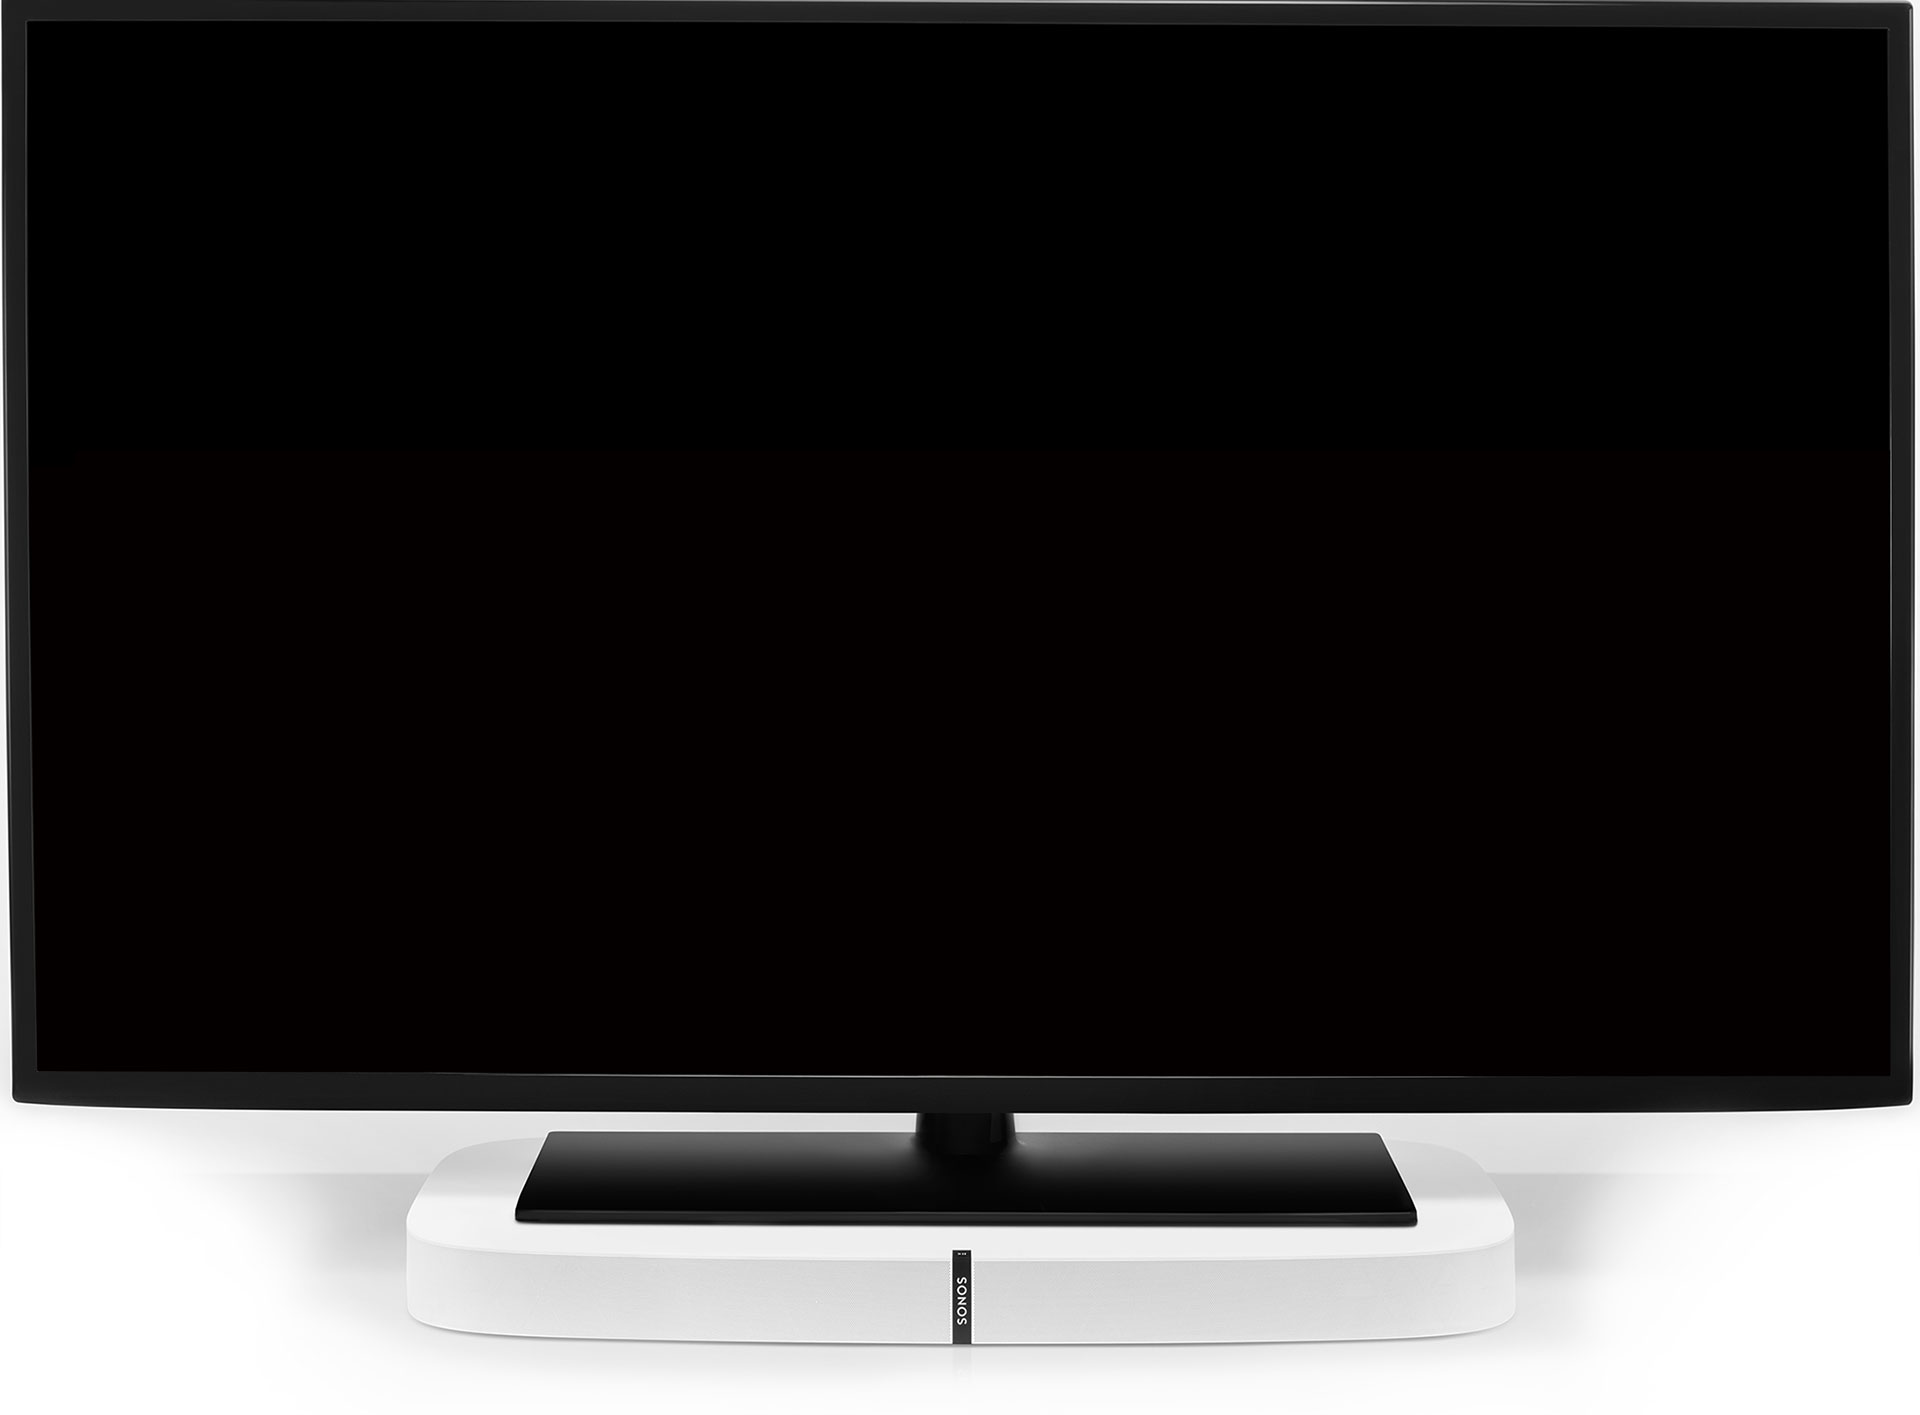 Wall Tv Design Playbase Wireless Soundbase Speaker For Tvs Sonos